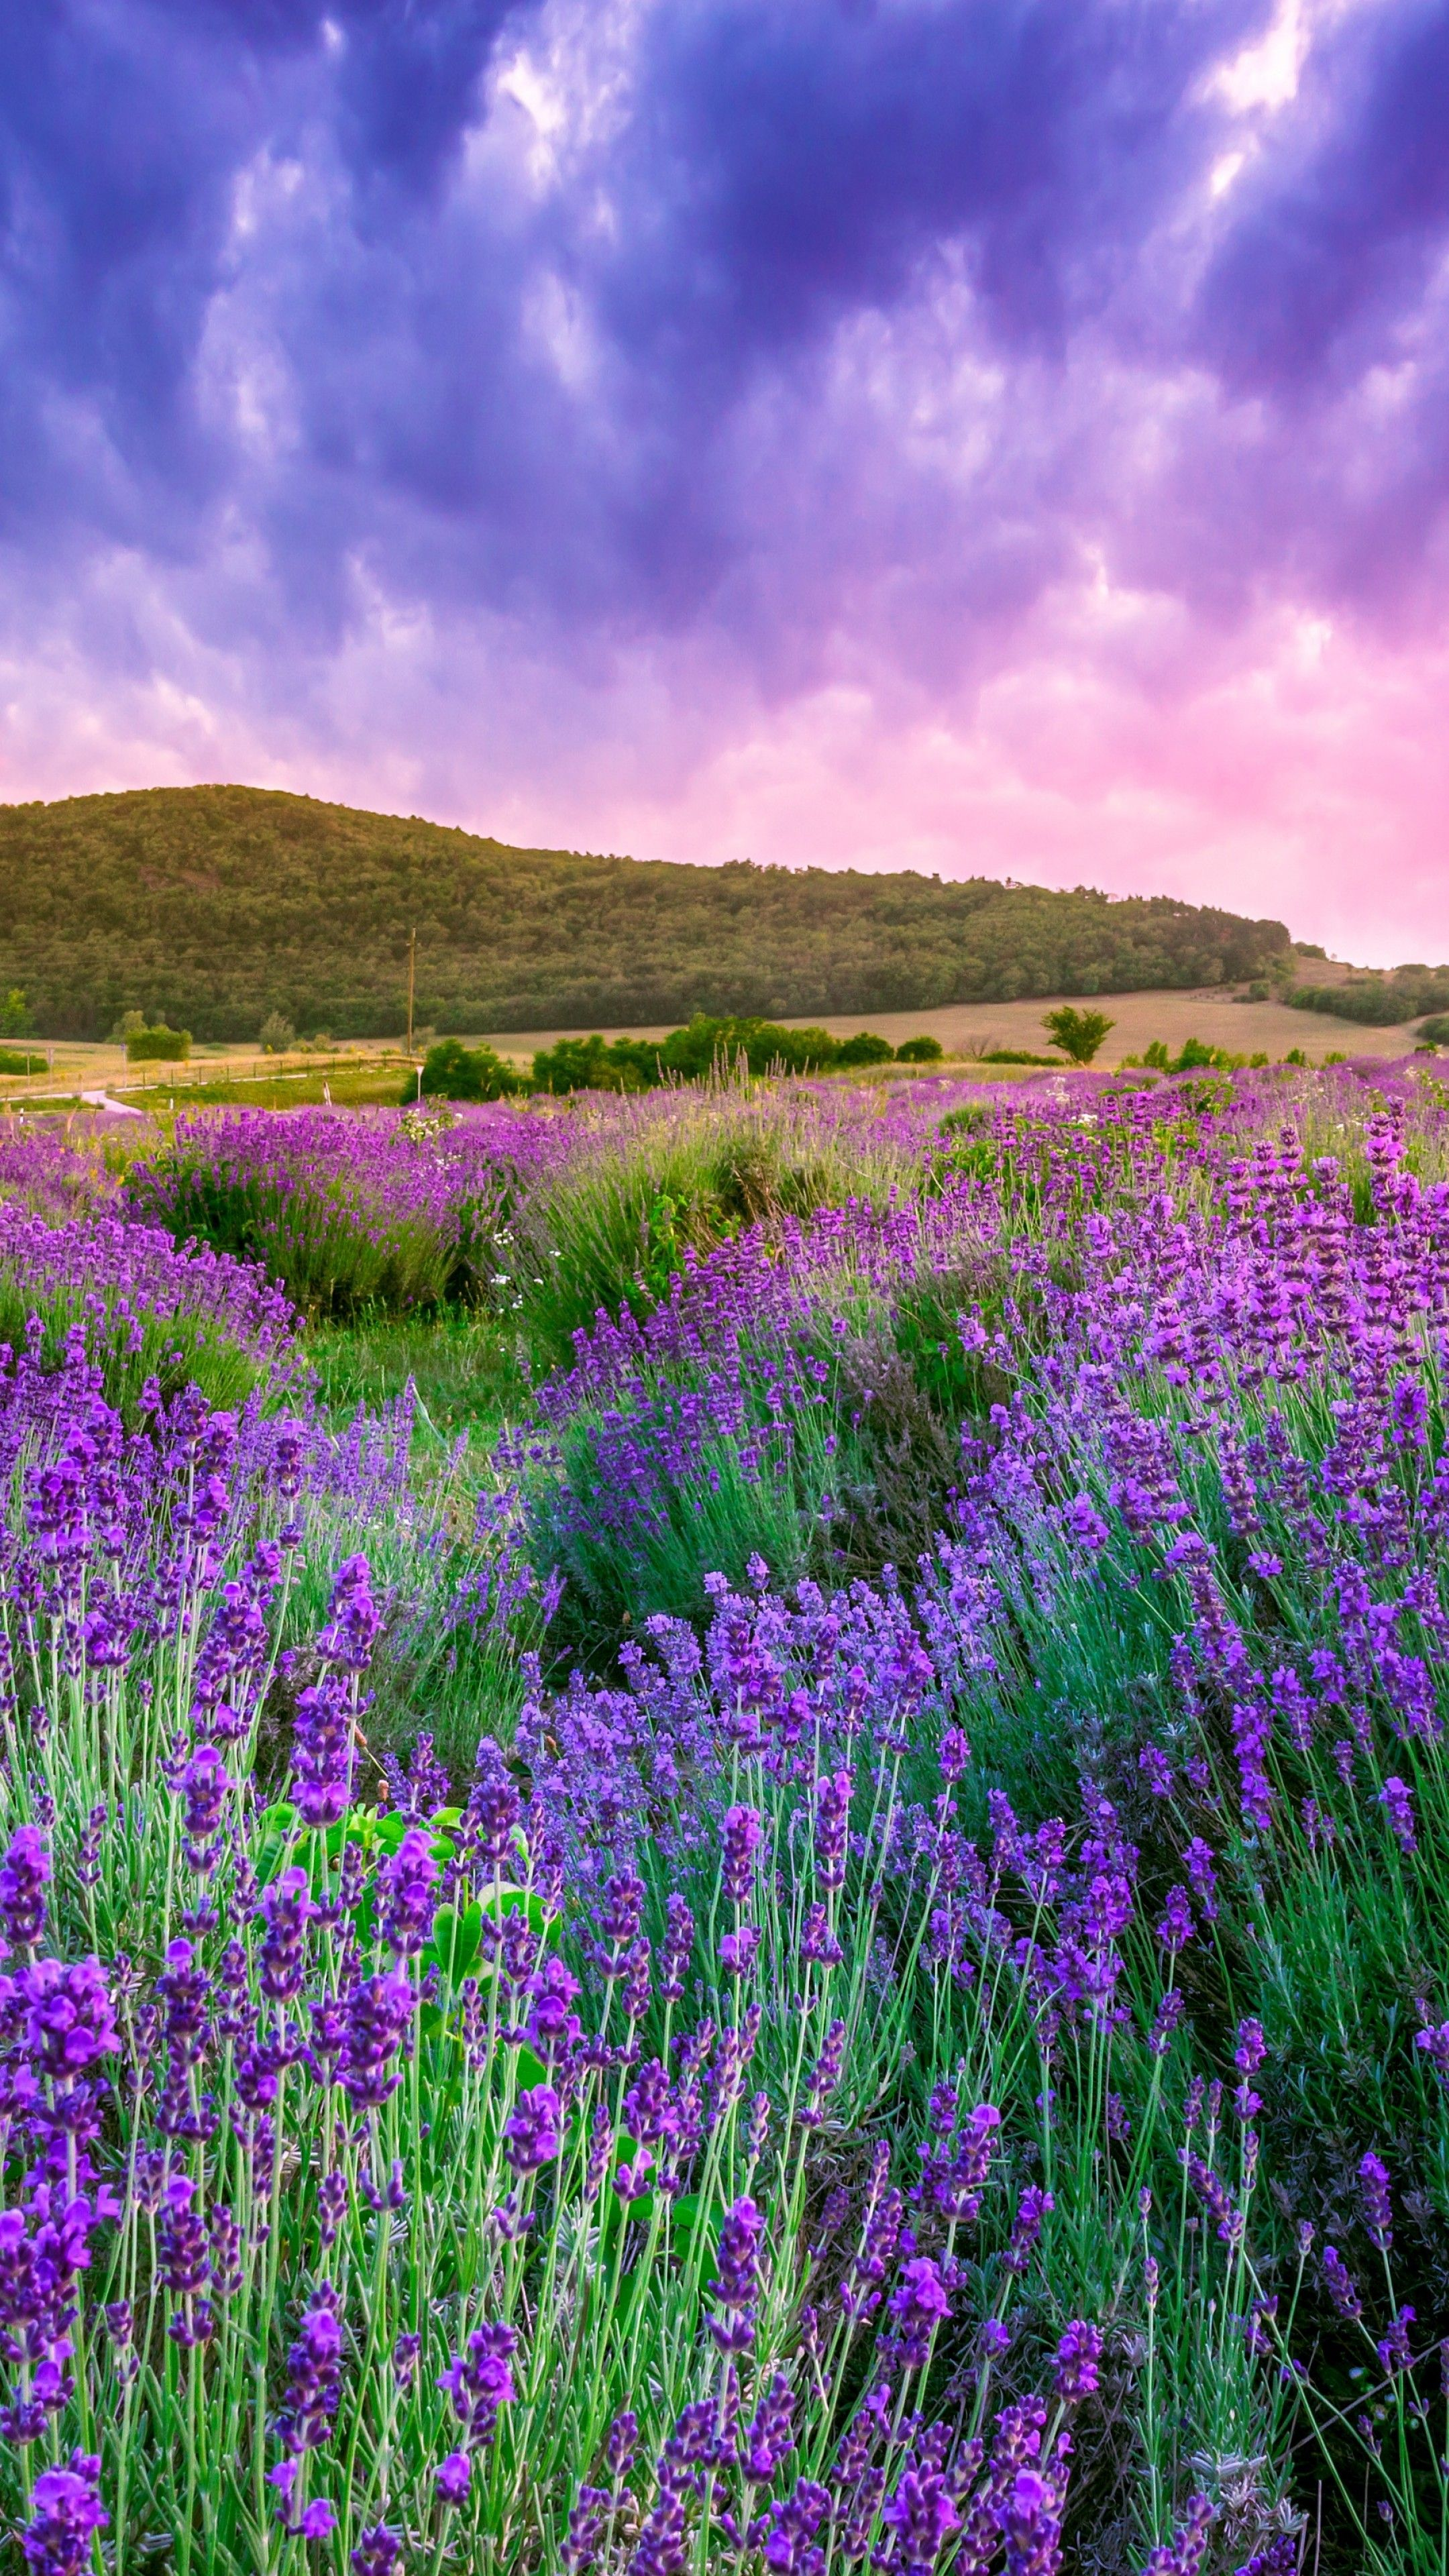 Provence France Wallpapers   Top Provence France Backgrounds 2160x3840